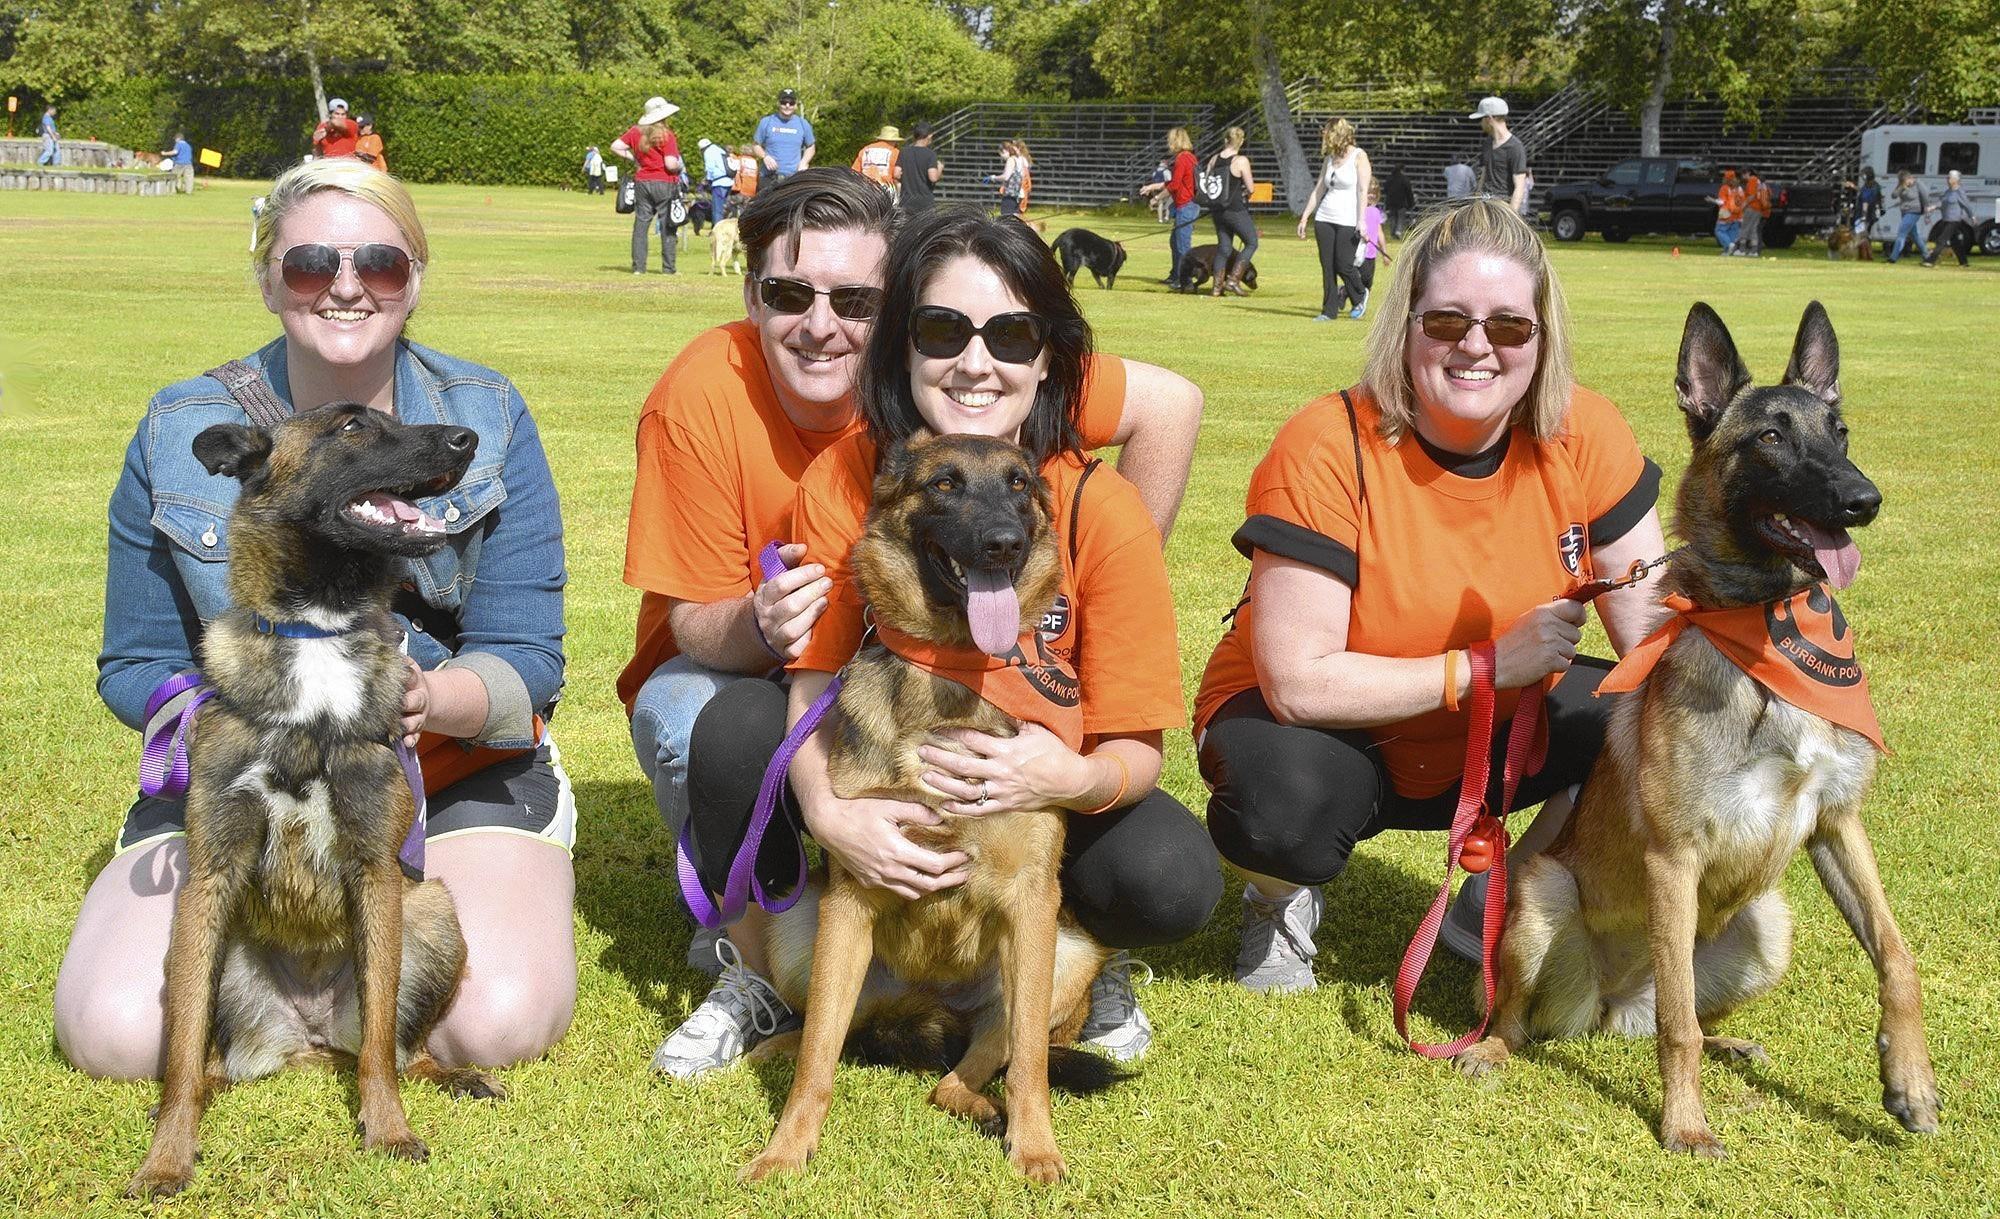 Among those who participated in Saturday's Hoof and Walk were, from left, Tyrannie Whetstone and Gretchen, Gregory and Christine VanGrunsven and Sara, and Sheira Whetstone and Elphie of The Animal Protectorates.